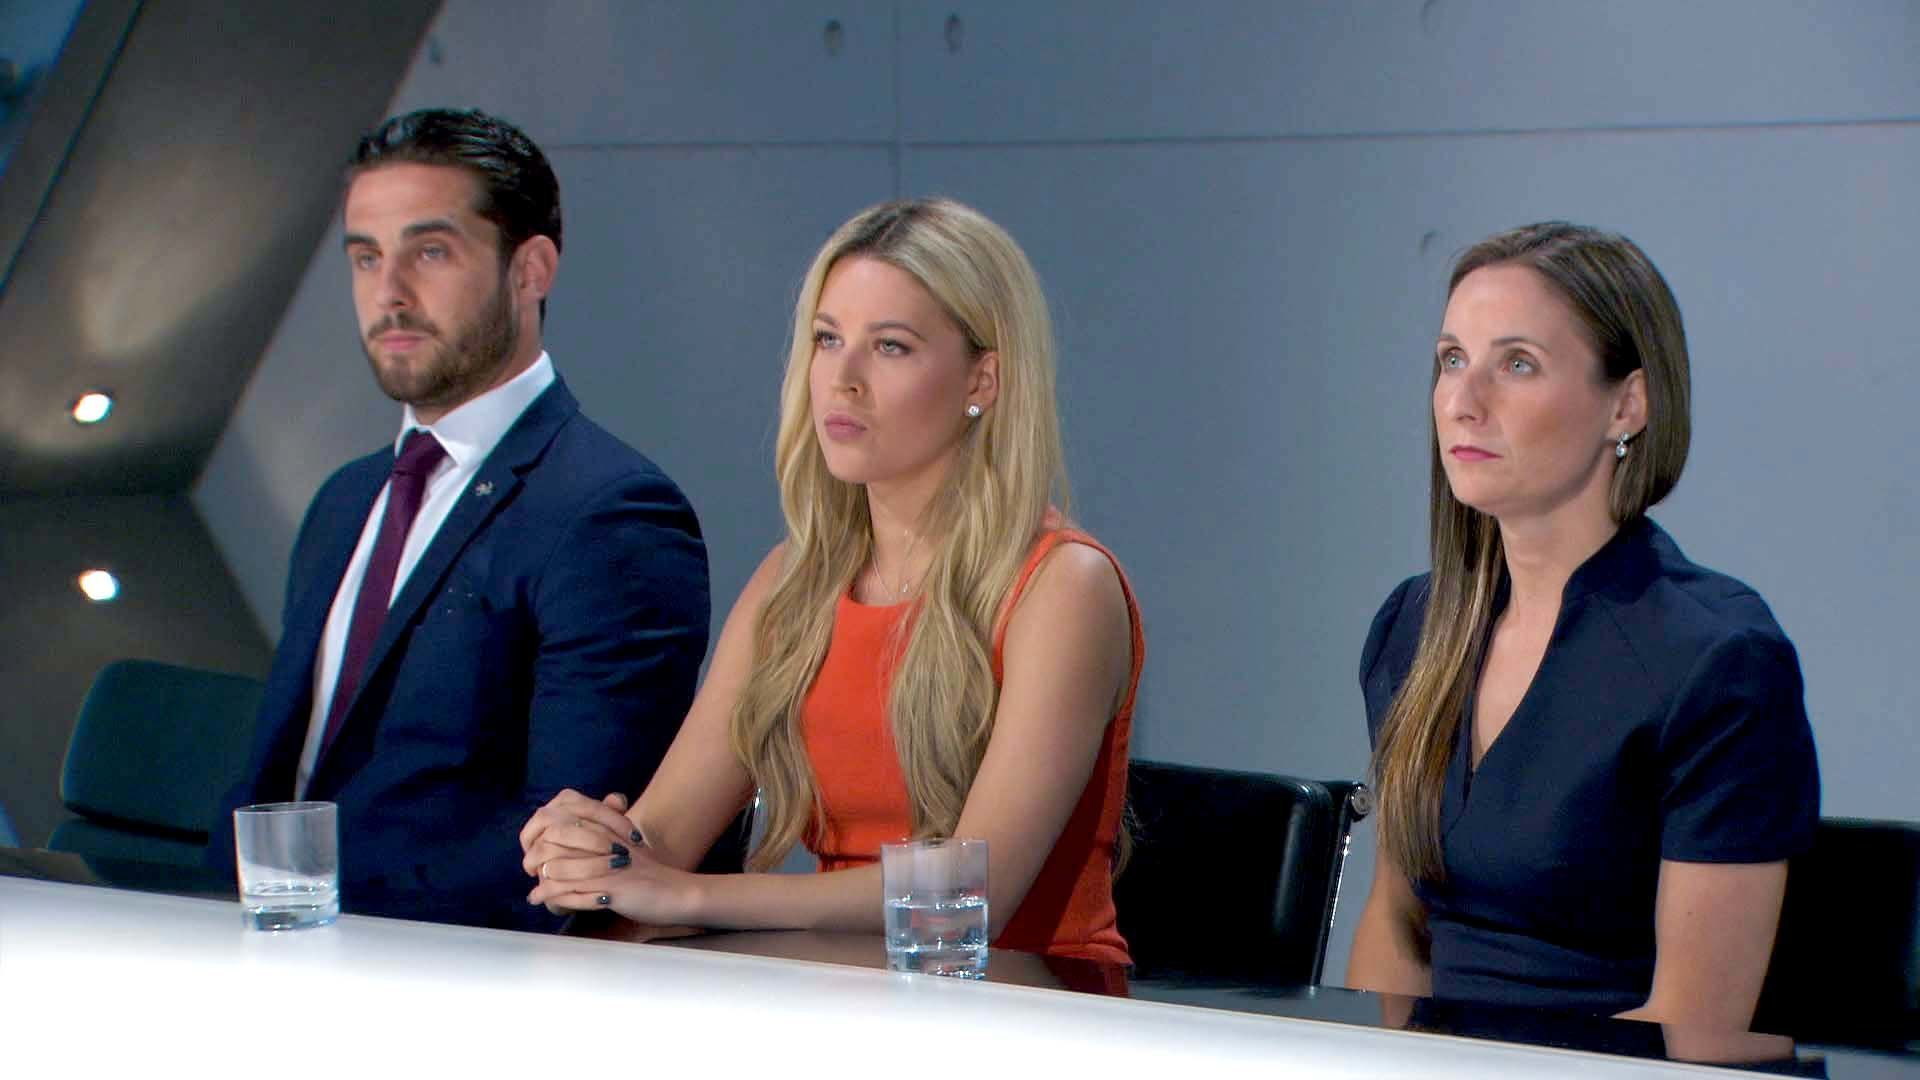 'The Apprentice': Fired Candidate Jade English On How Being In The Boardroom Early On Can Be Beneficial